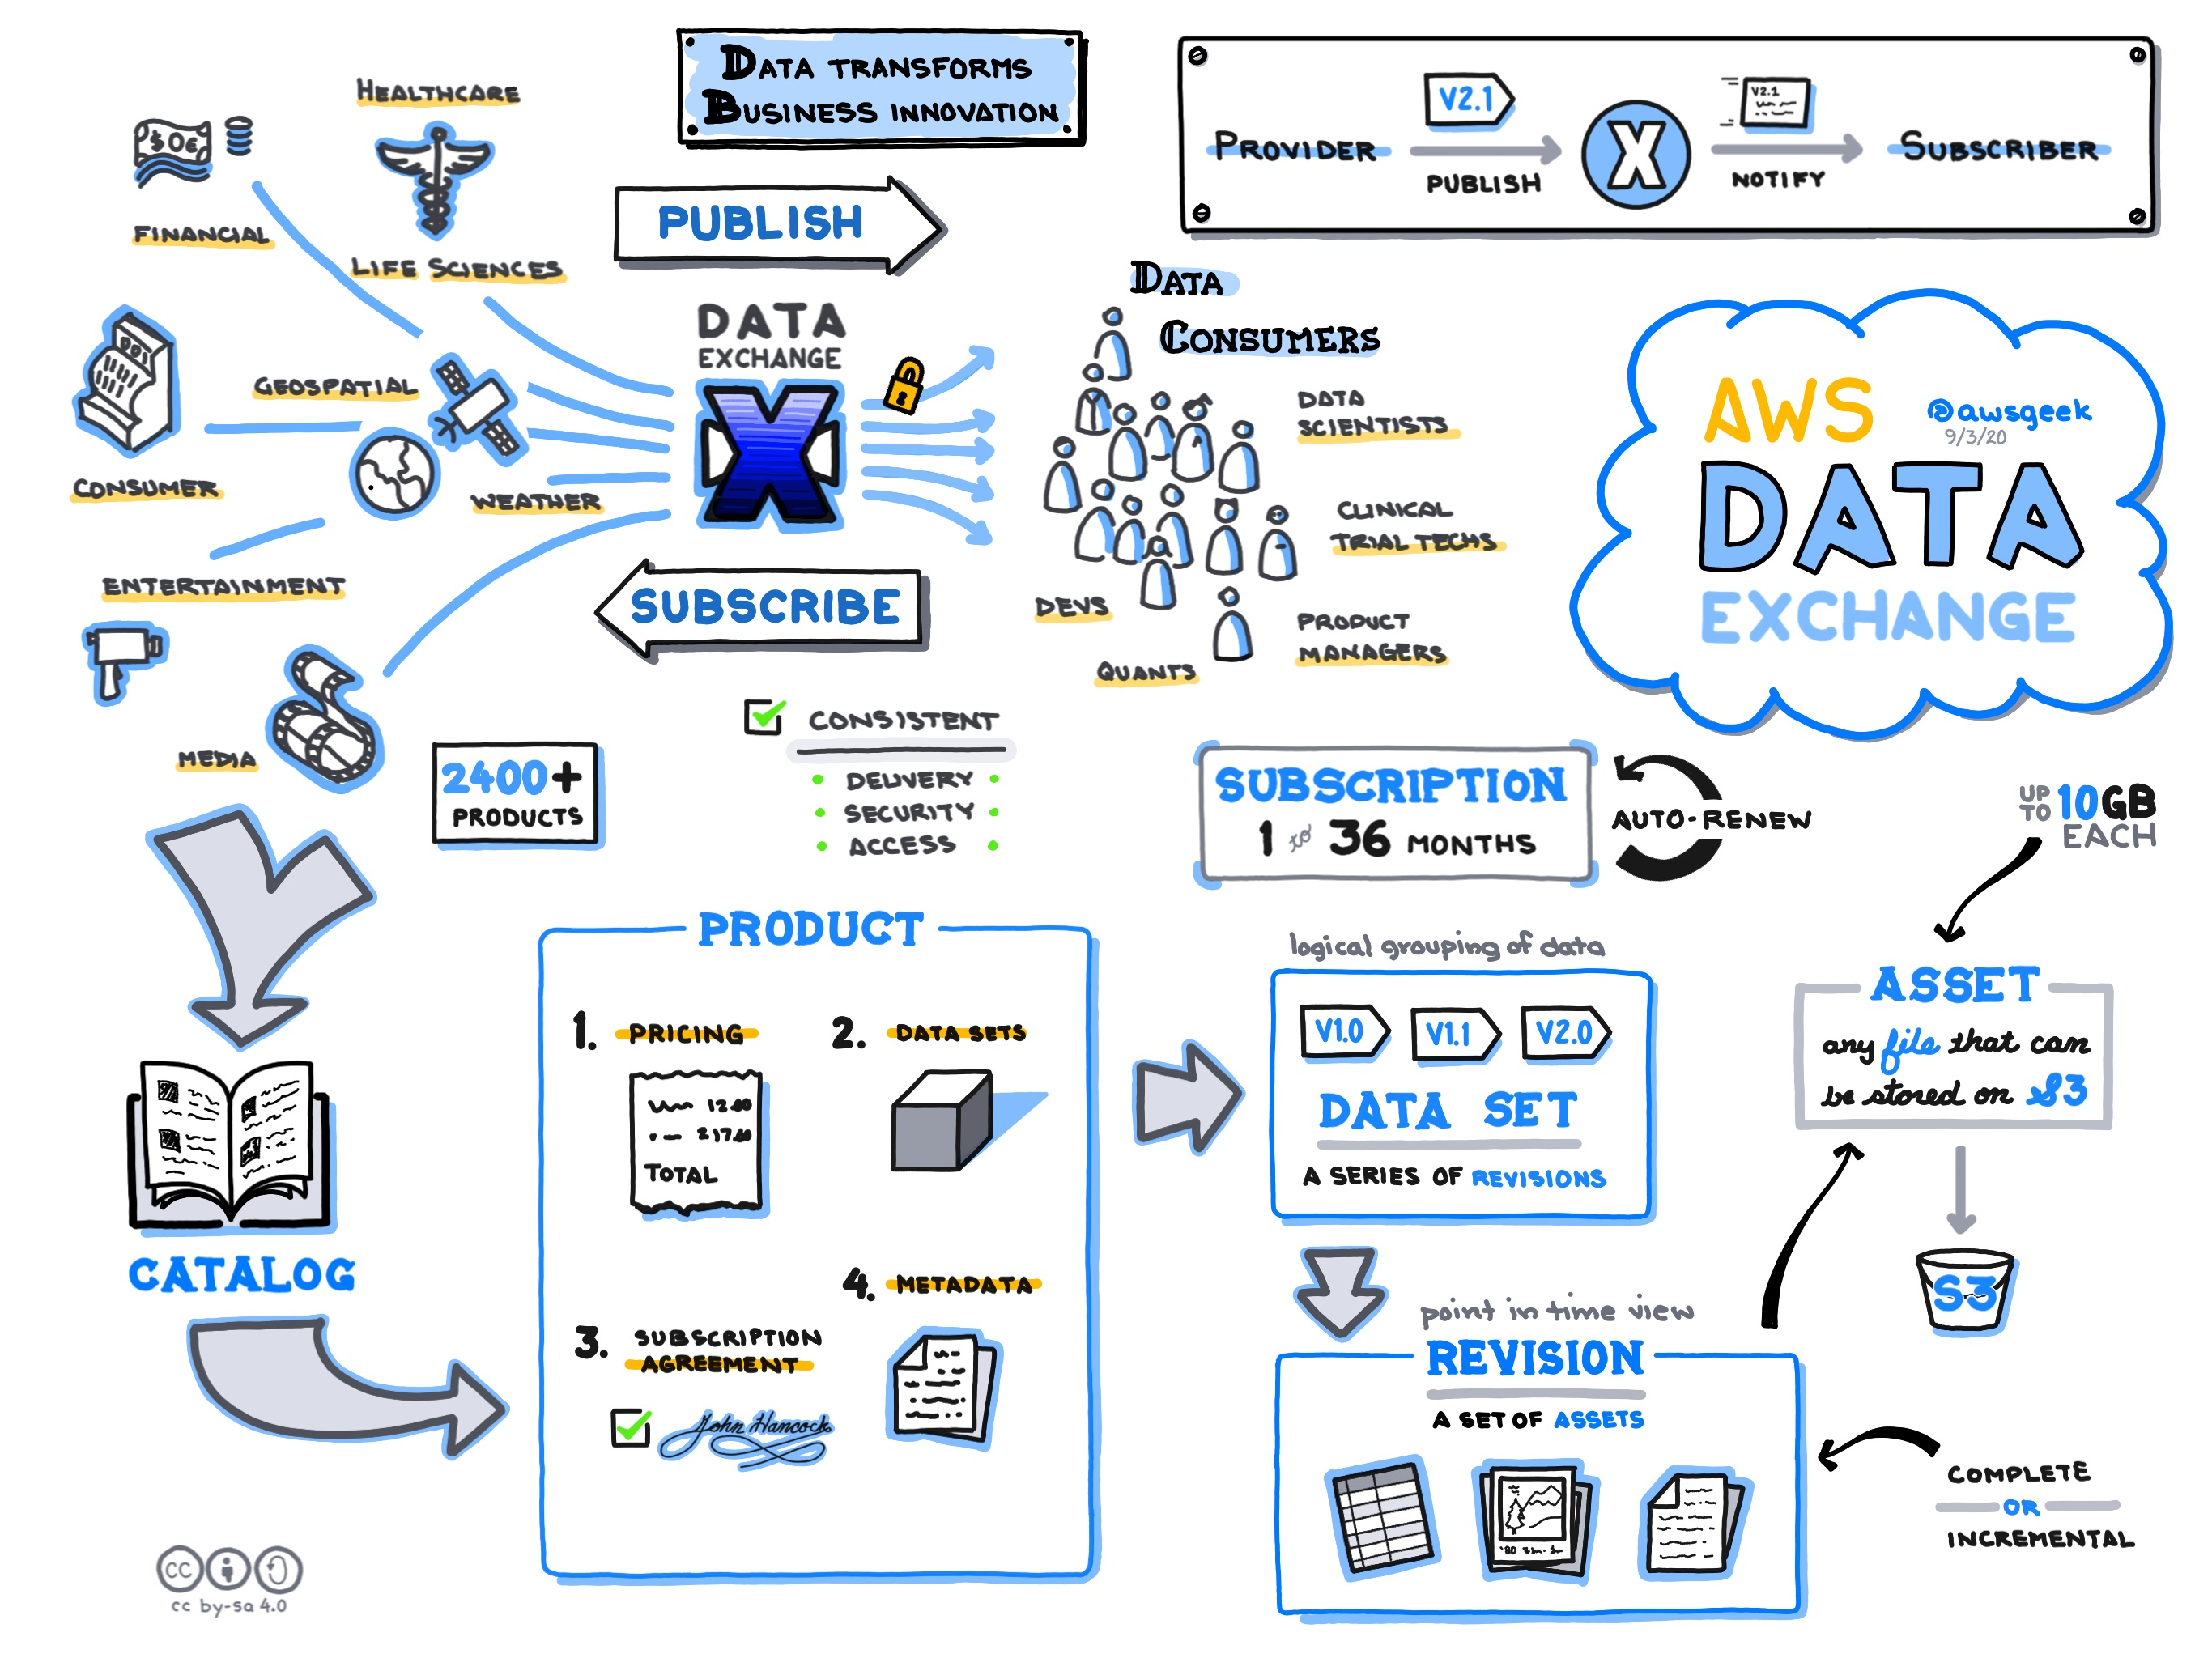 AWS-Data-Exchange.jpg